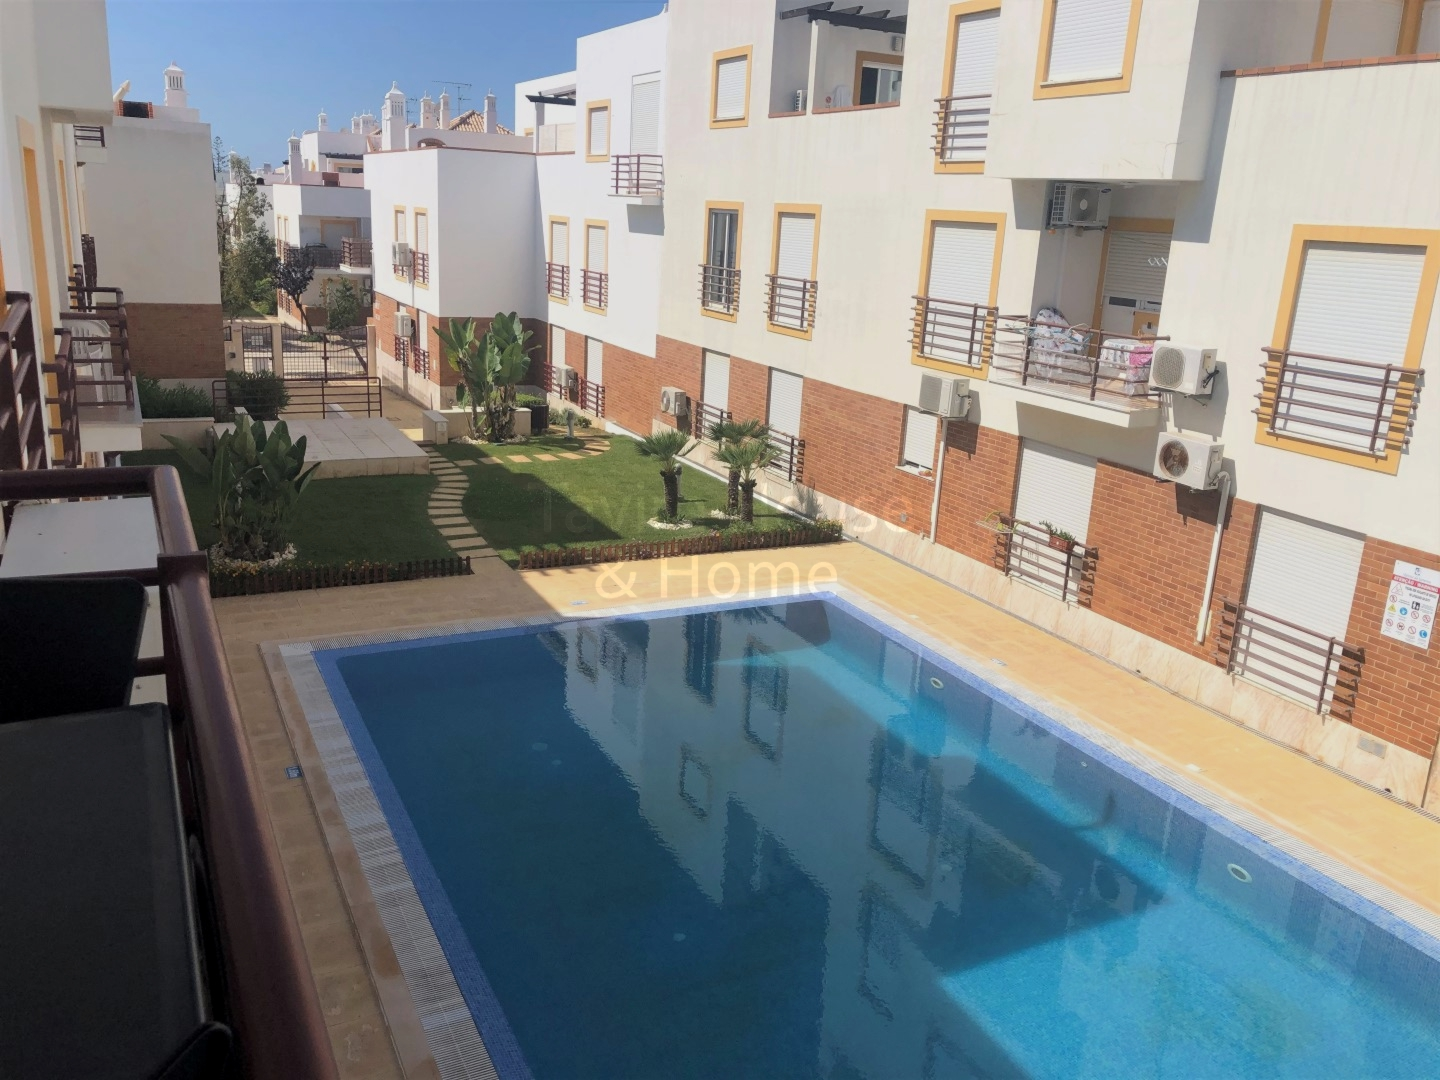 A0593 - 1 Bedroom Apartment with Pool  Cabanas  Tavira  Portugal